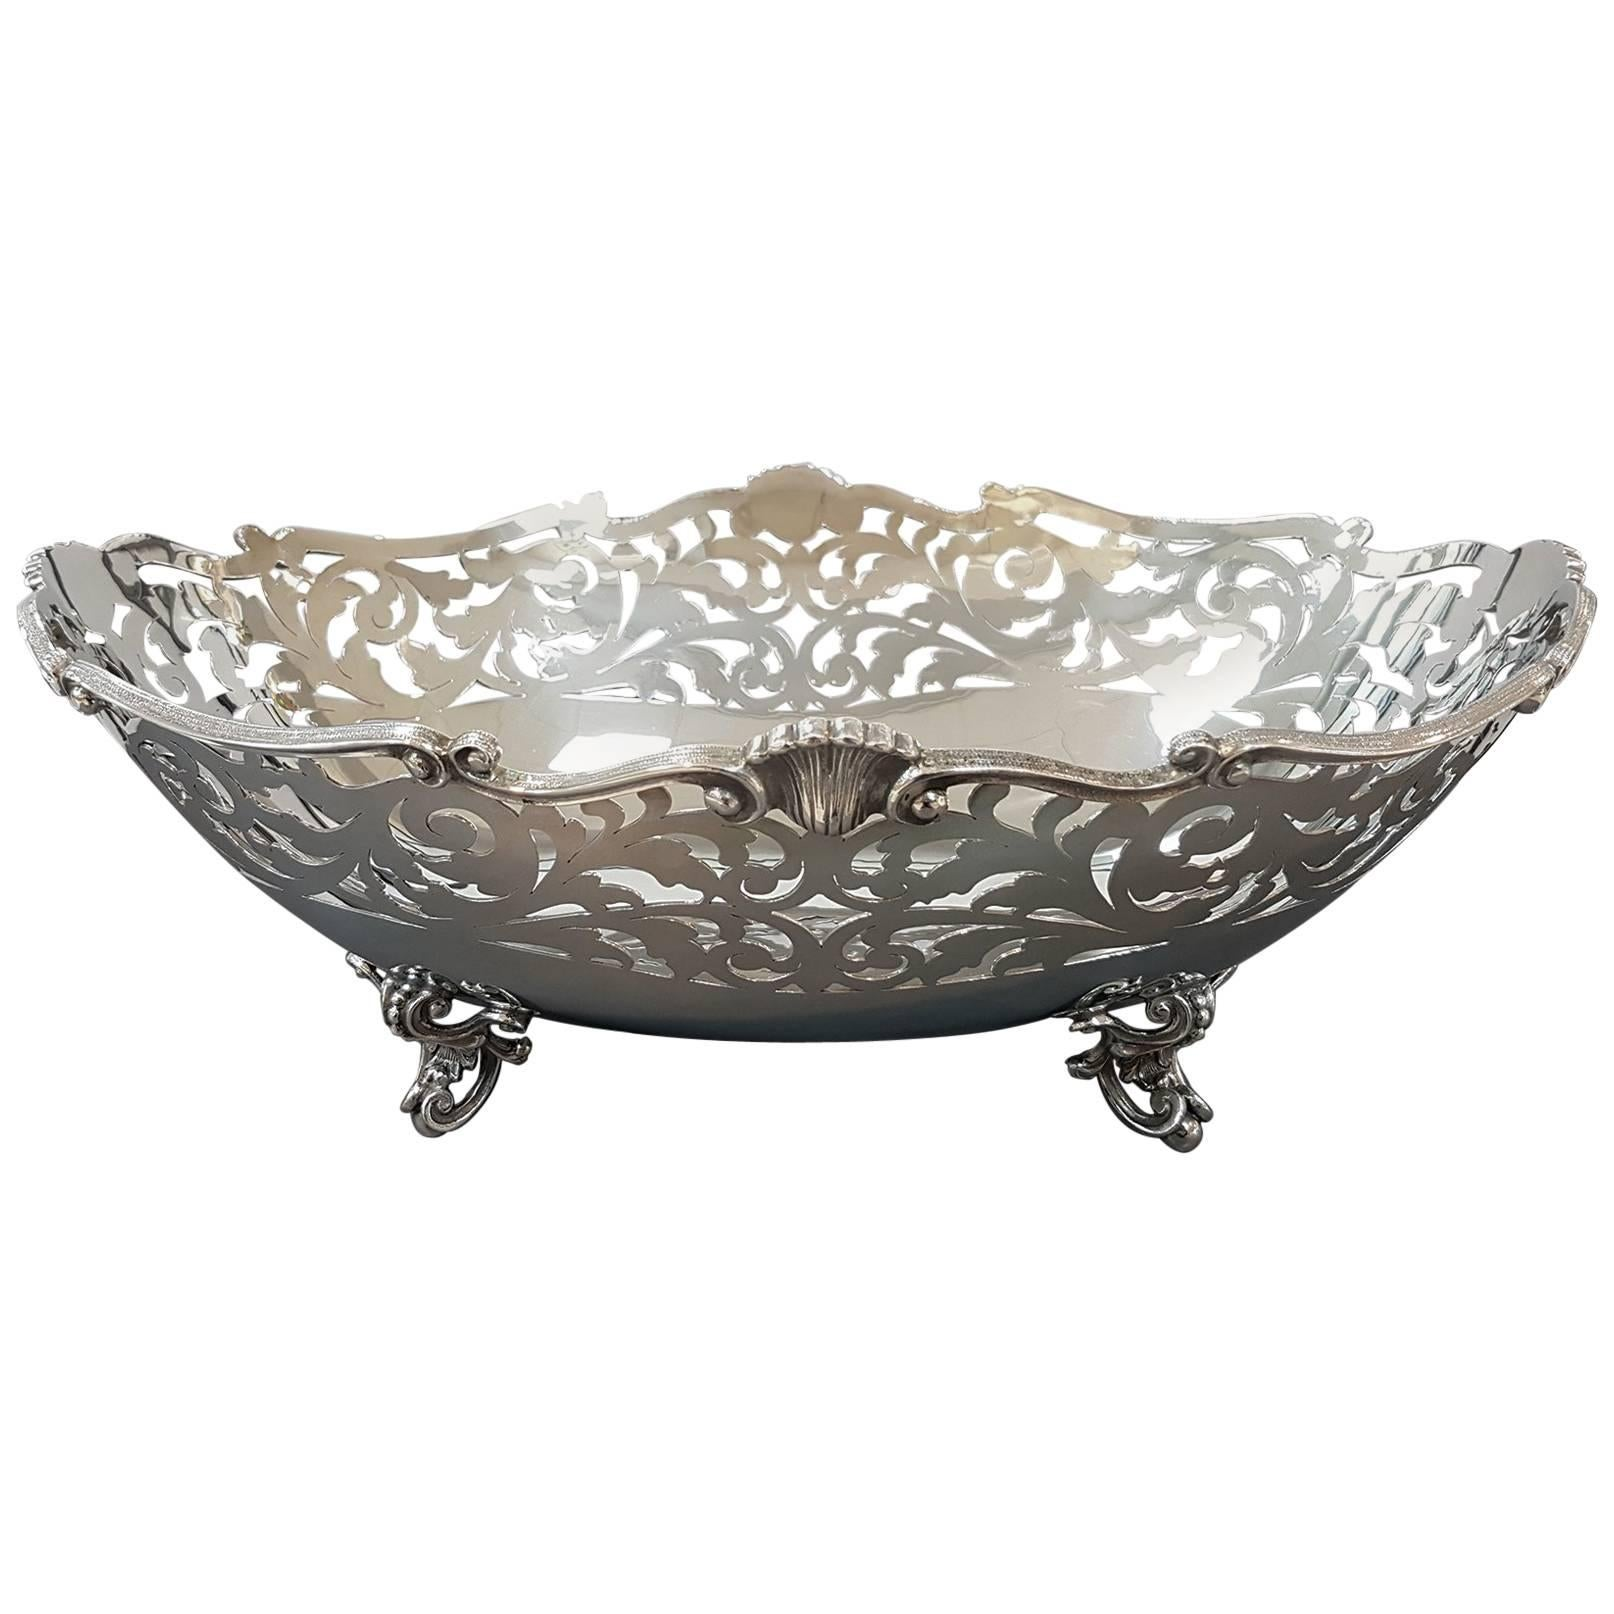 20th Century Sterling Silver Pierced Centrepiece. Handicrafts made in Italy